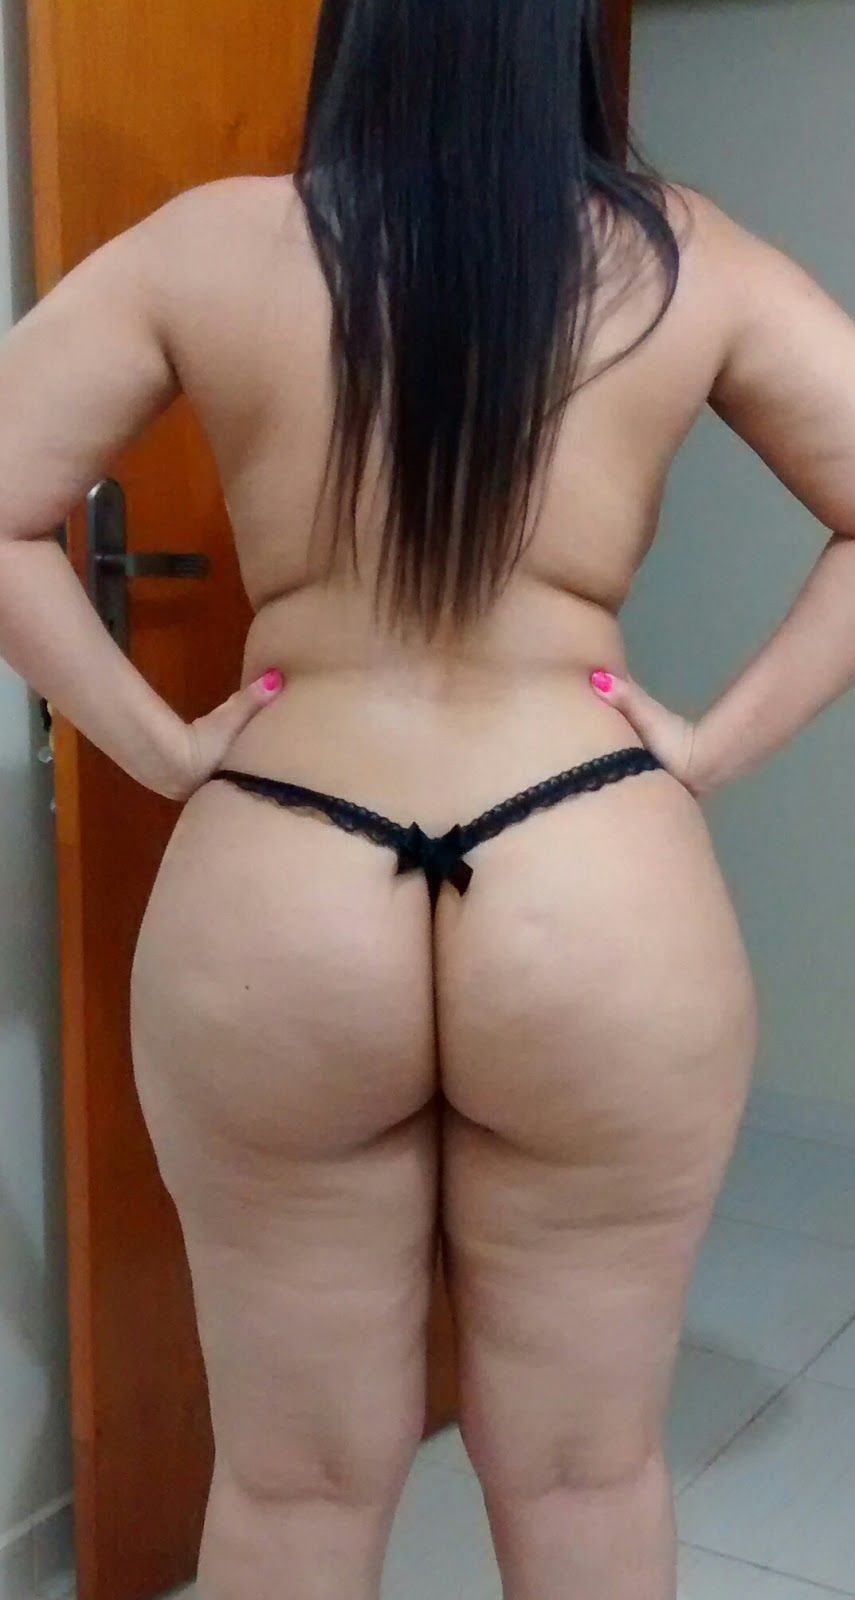 orgias amateur videos x de gordas